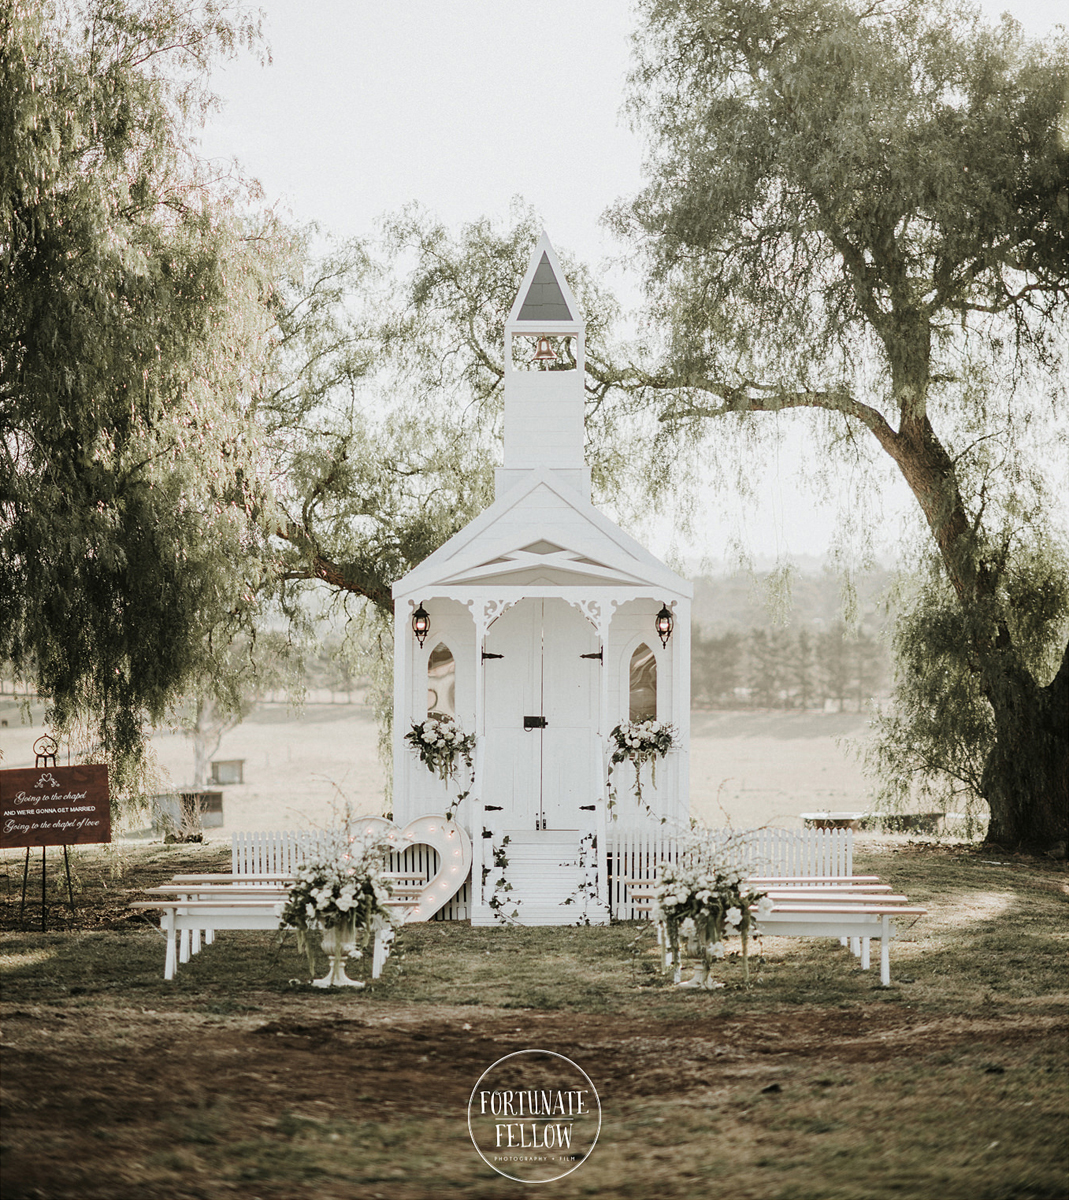 The Travelling Chapel